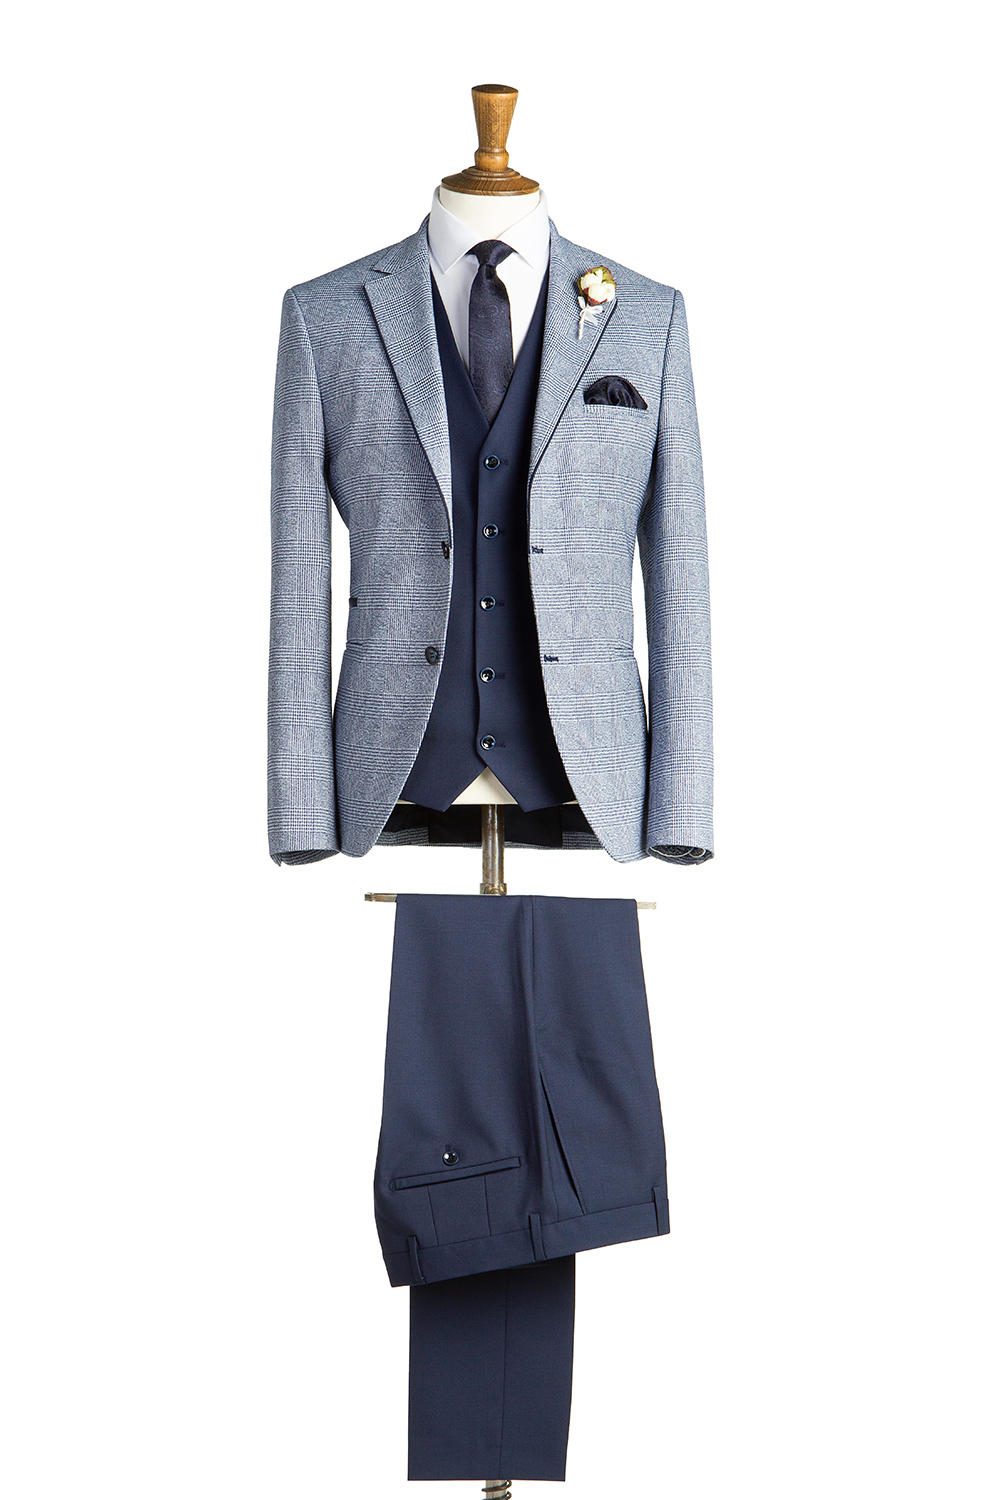 Ruxton Pale Blue Check Tweed Suit